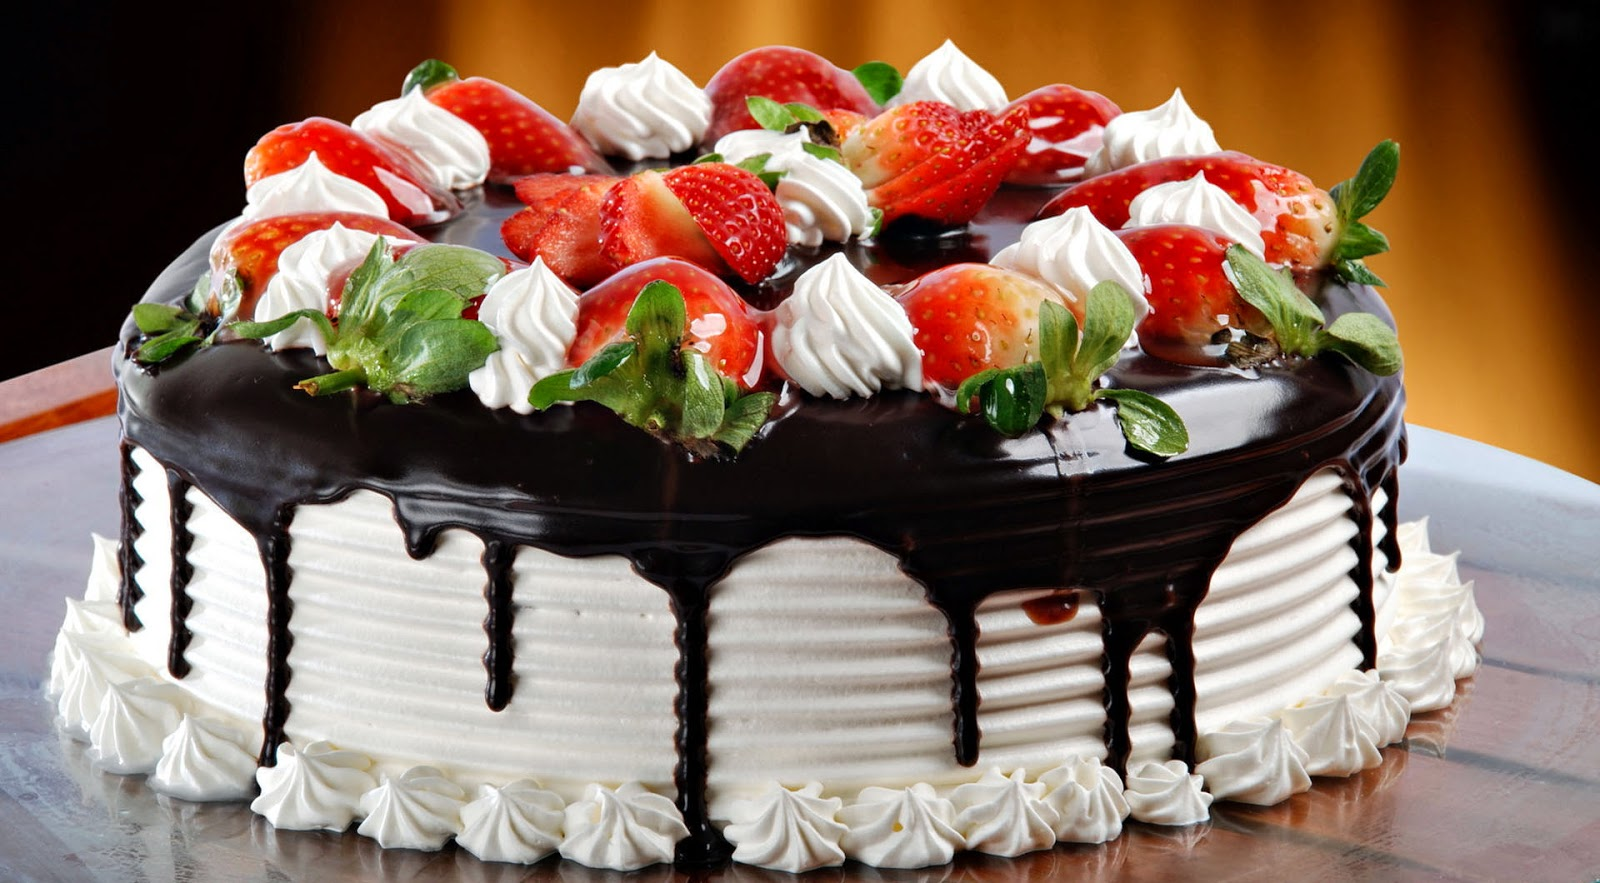 25+ delicious cake images